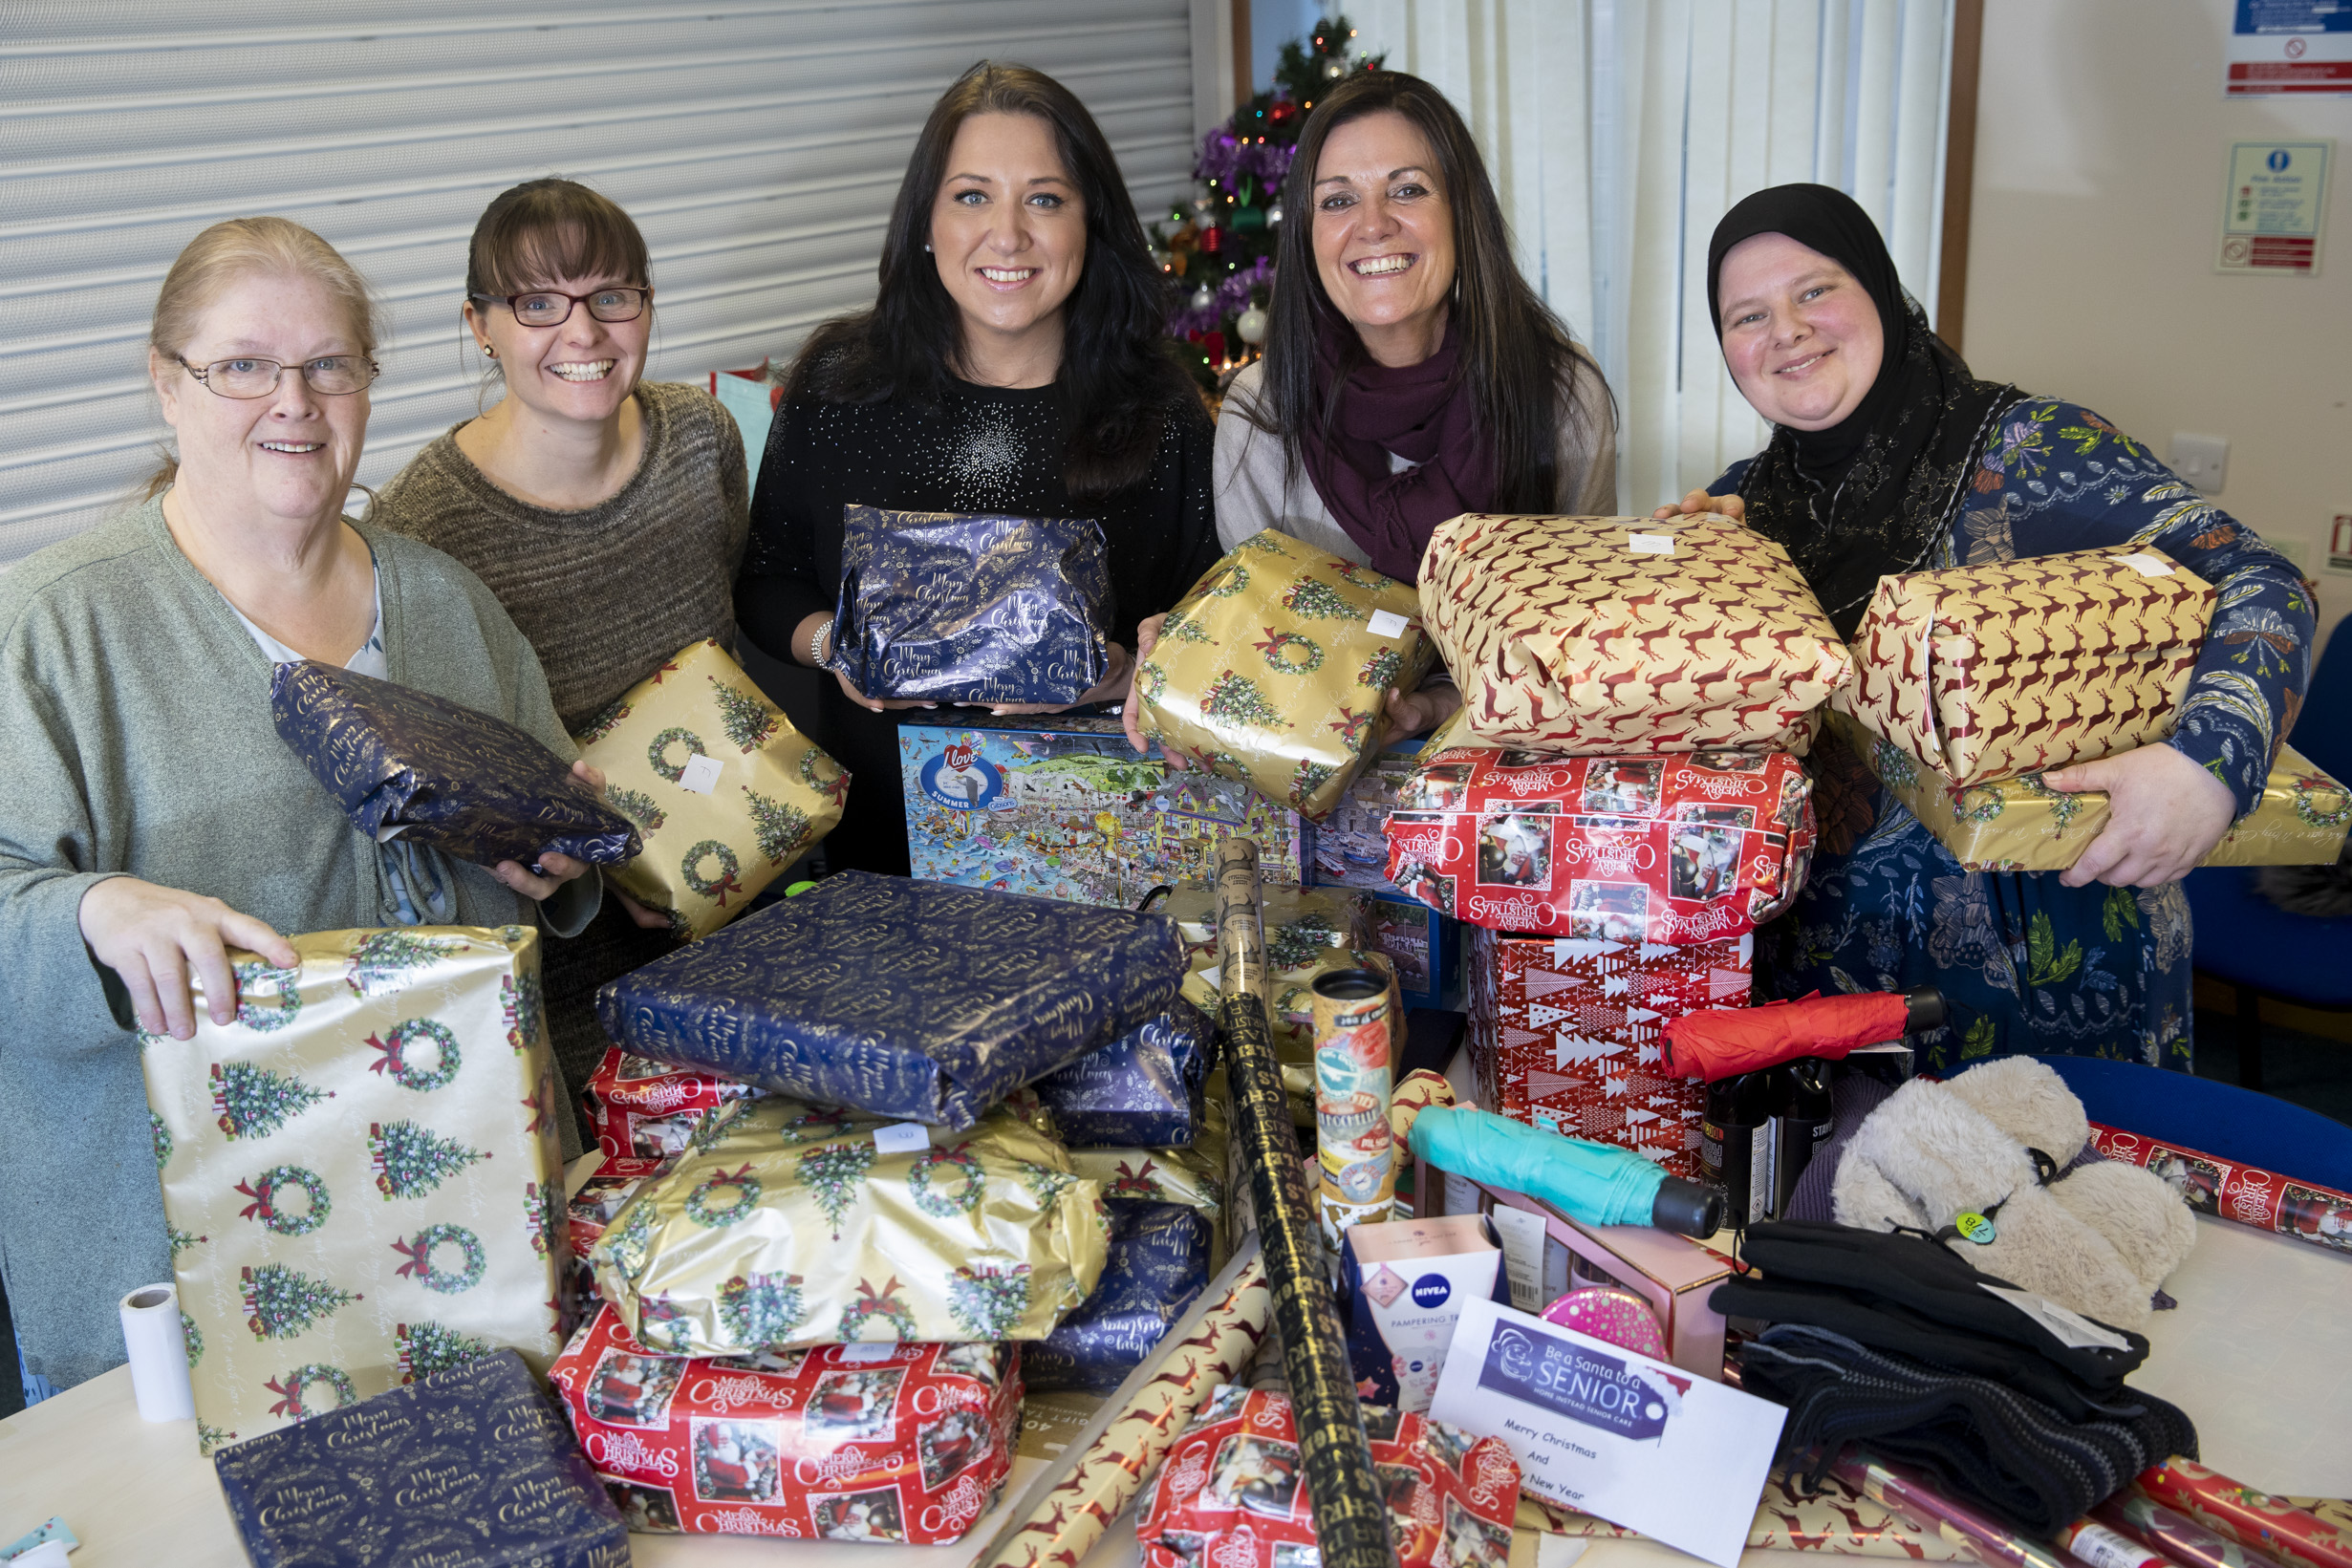 Christmas wrappers bring festive cheer to older people living alone